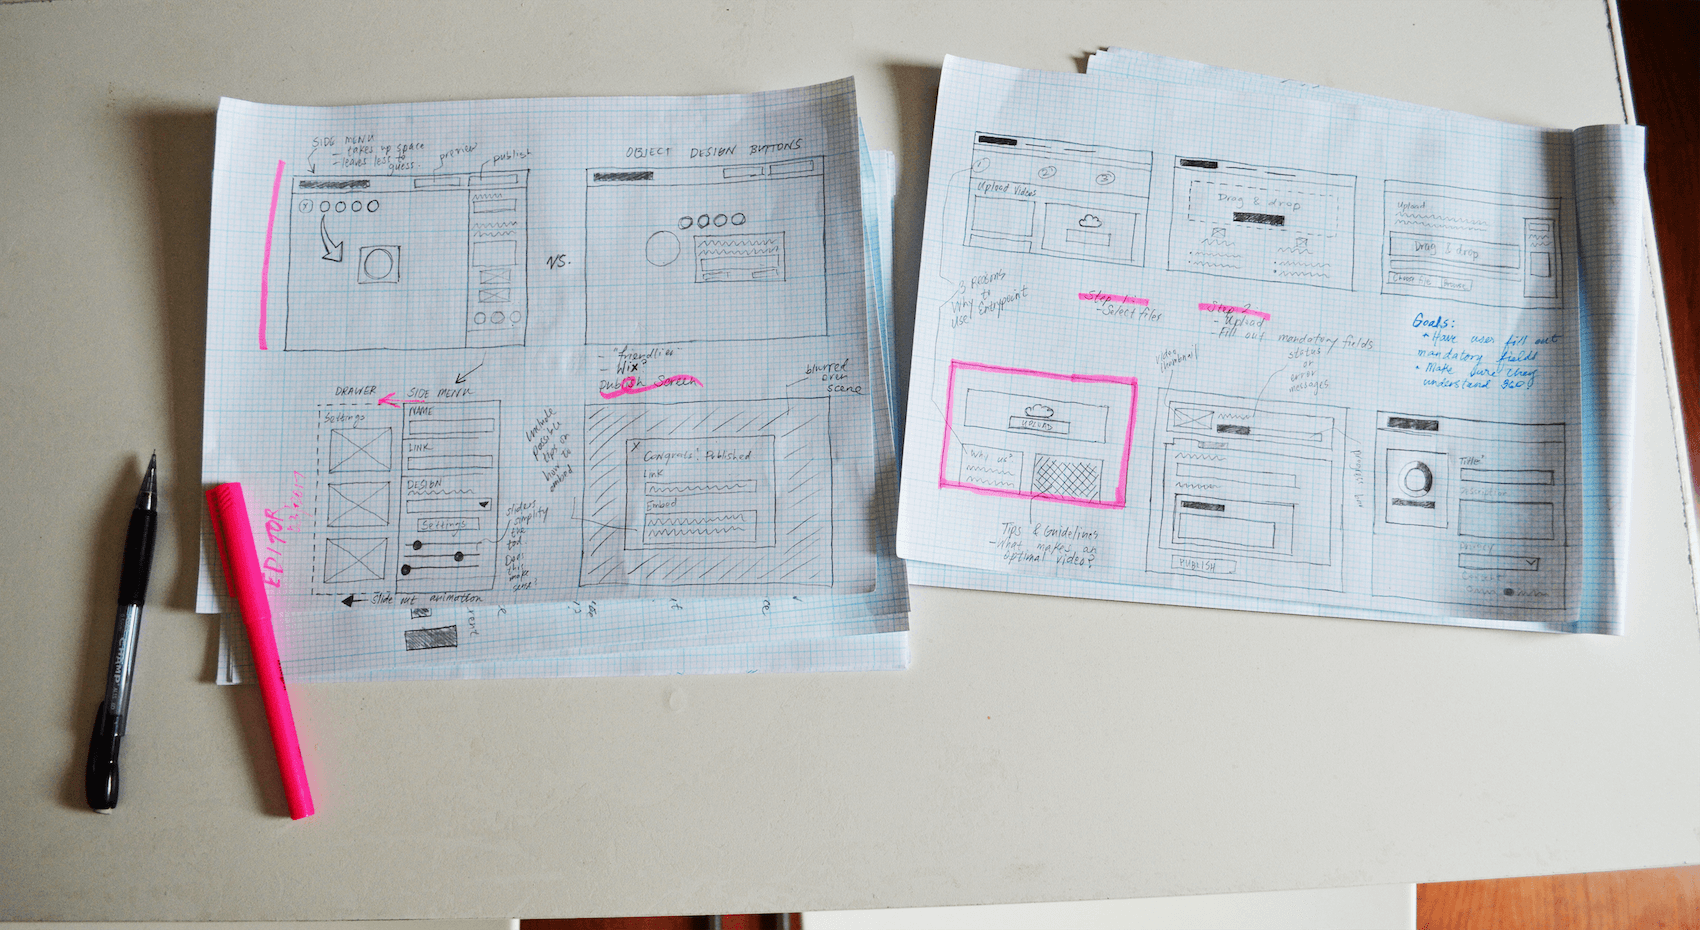 Early sketches of the editing platform.